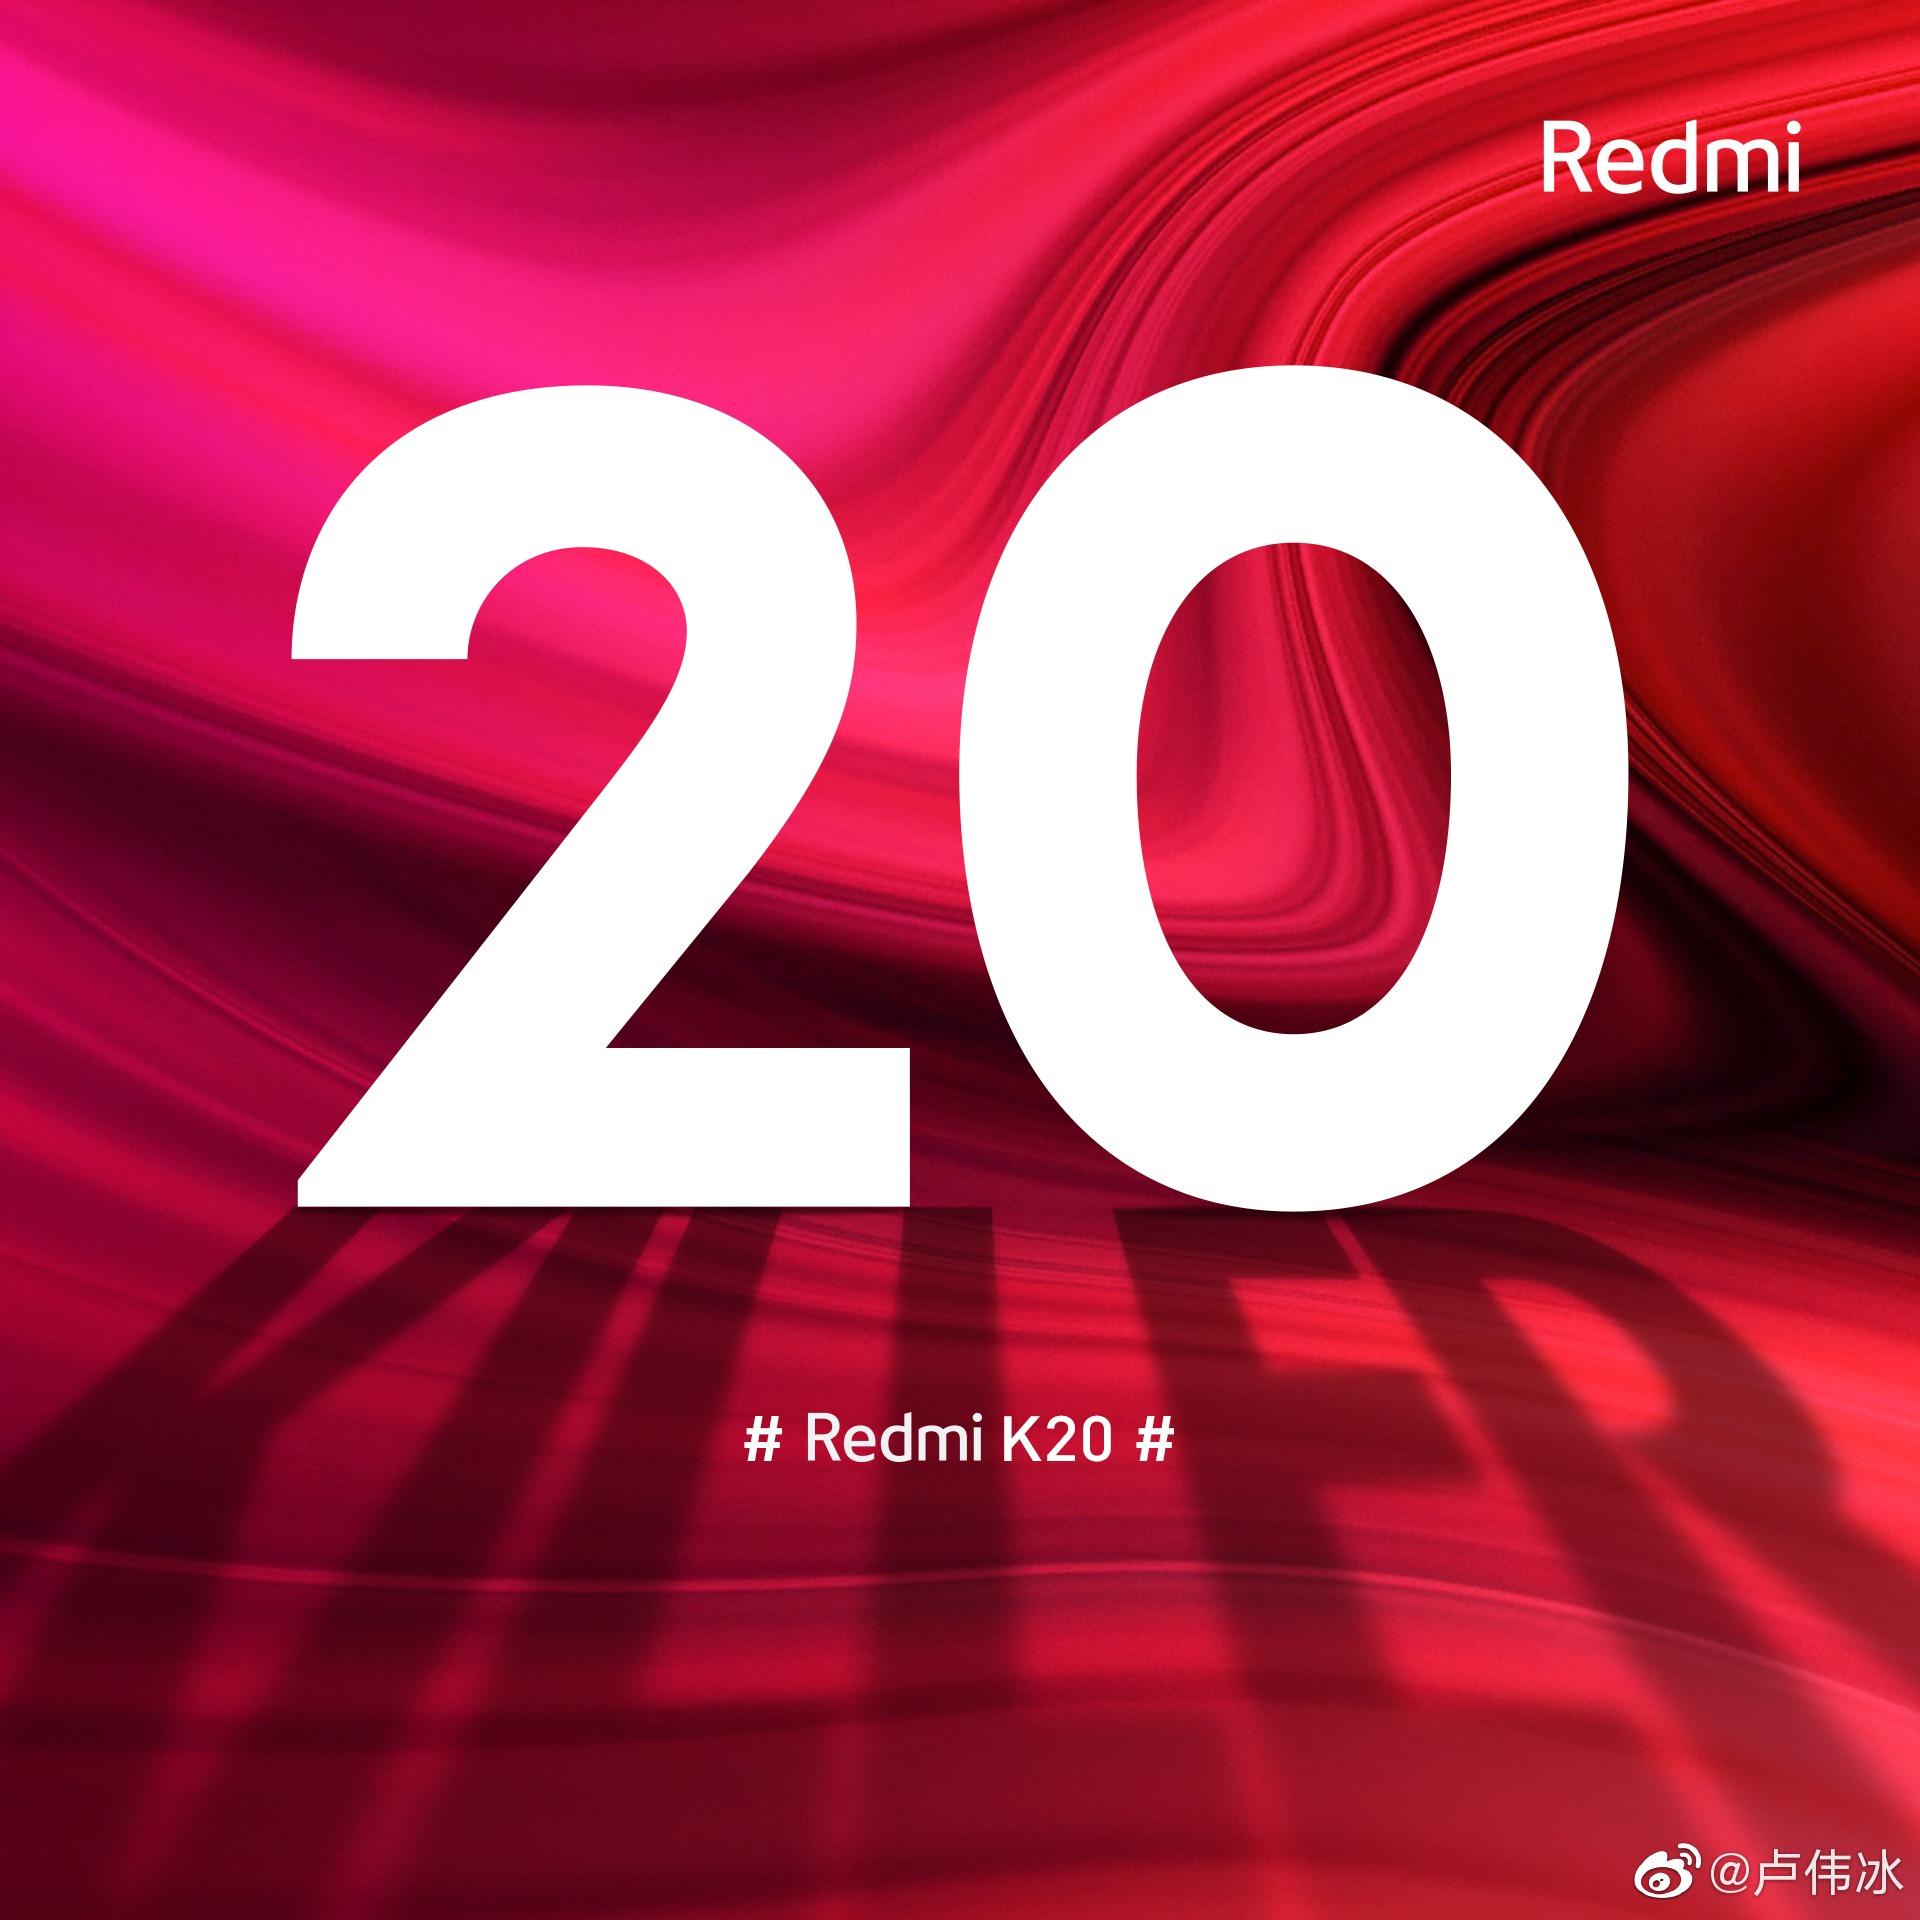 Redmi K20 officially confirmed to launch as a flagship killer 2